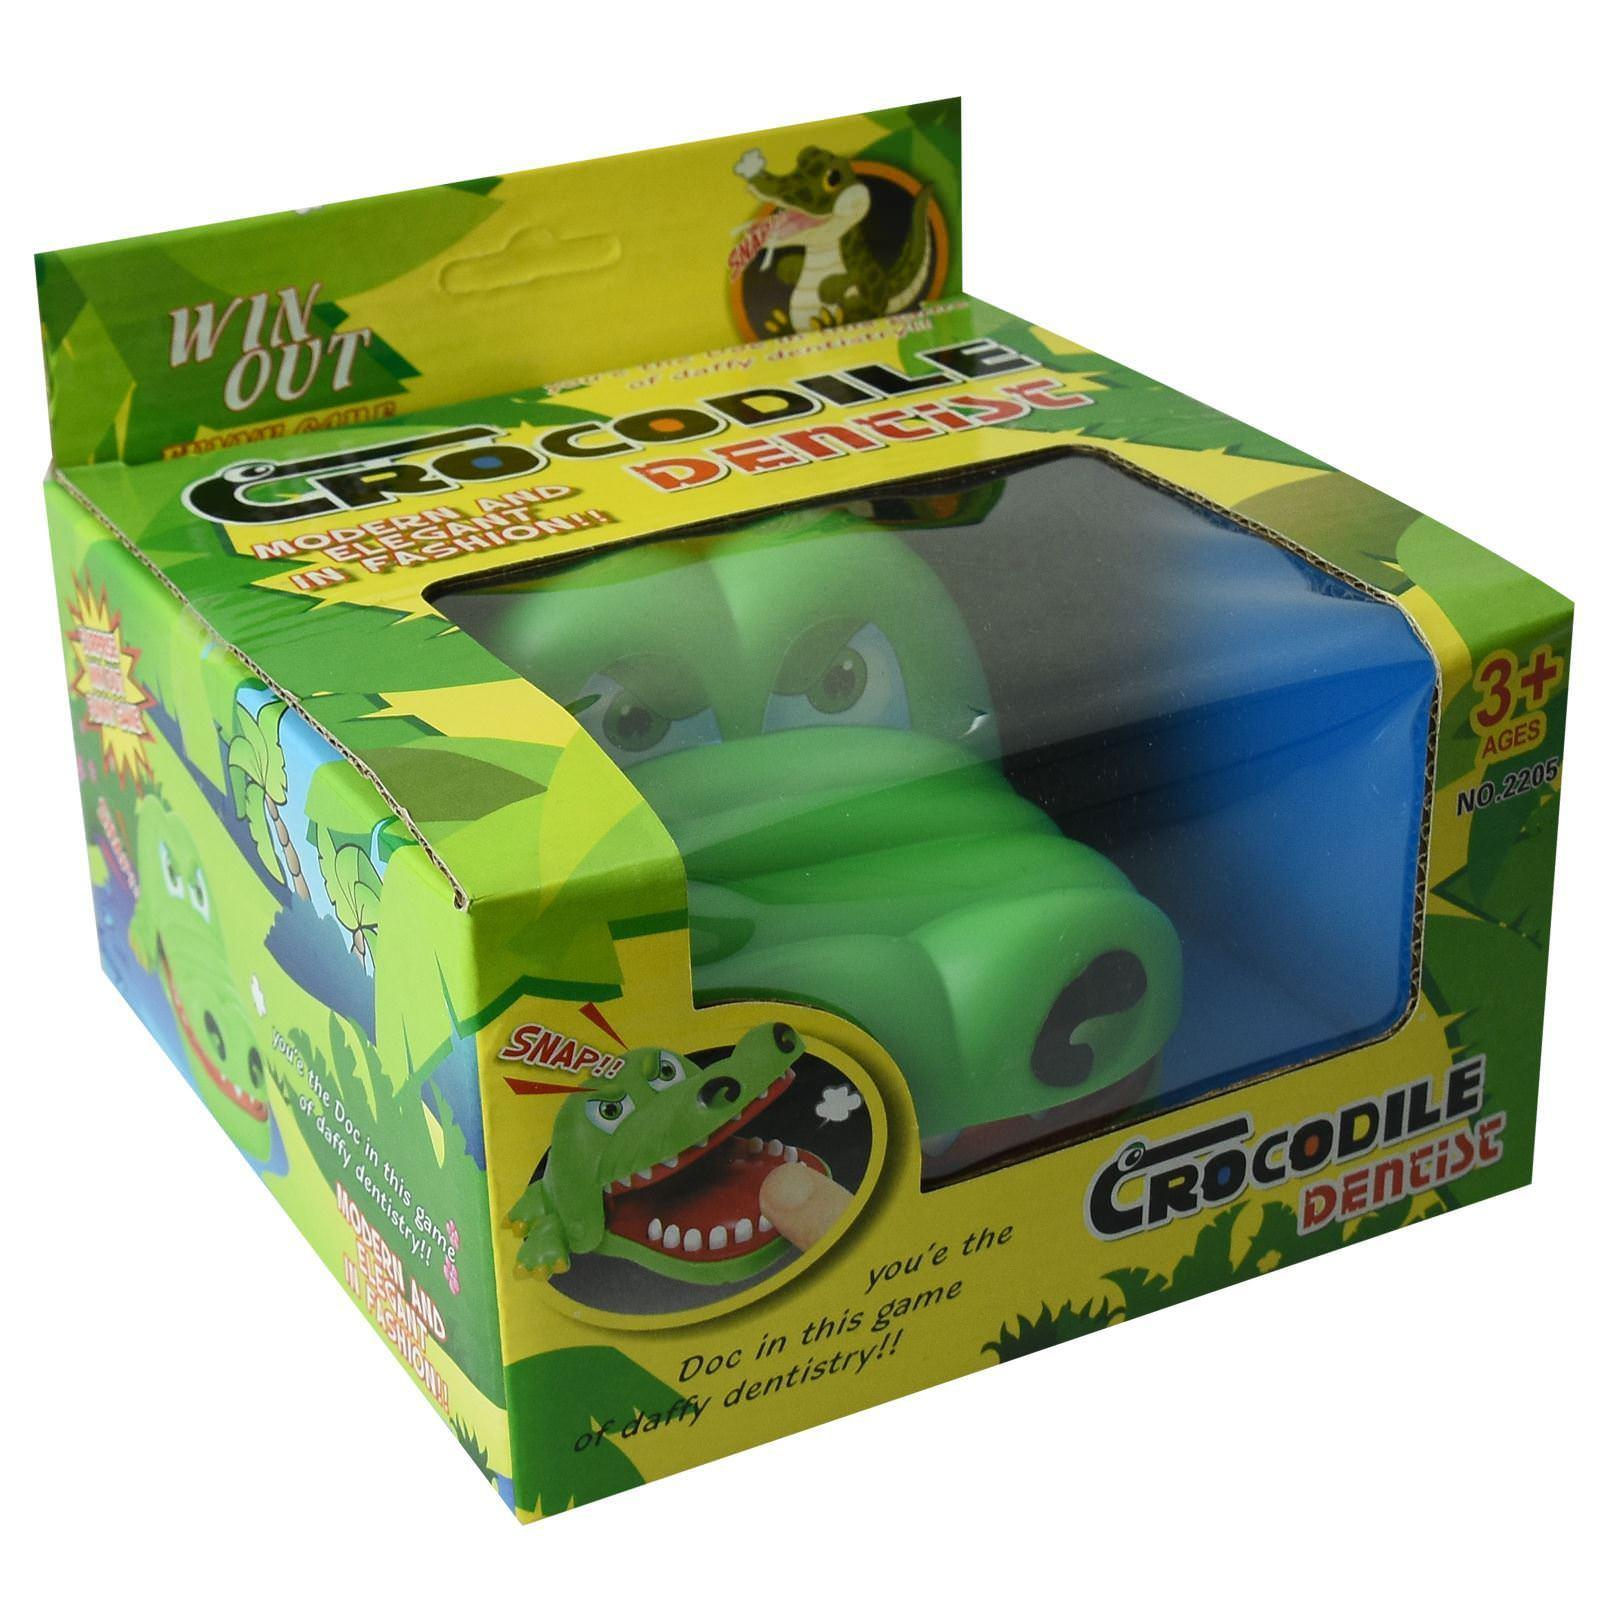 Crocodile Dentist Toy Asab